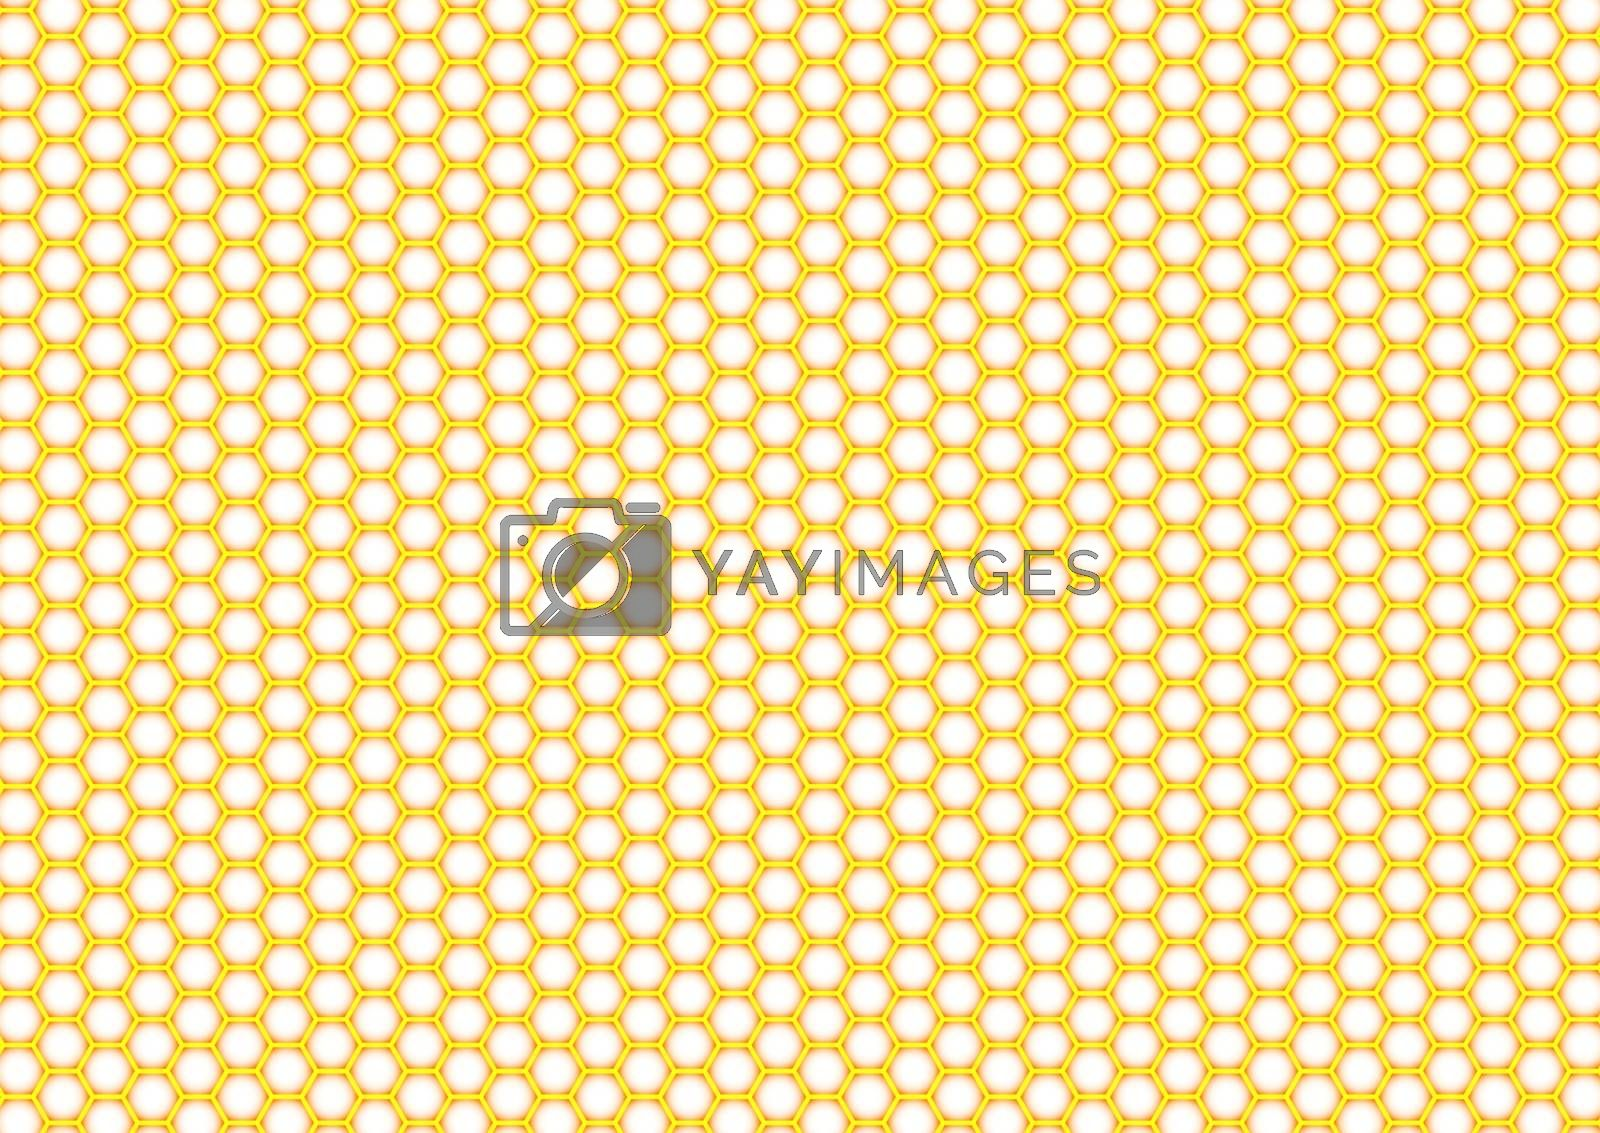 Abstract background geometric background for design and decoration